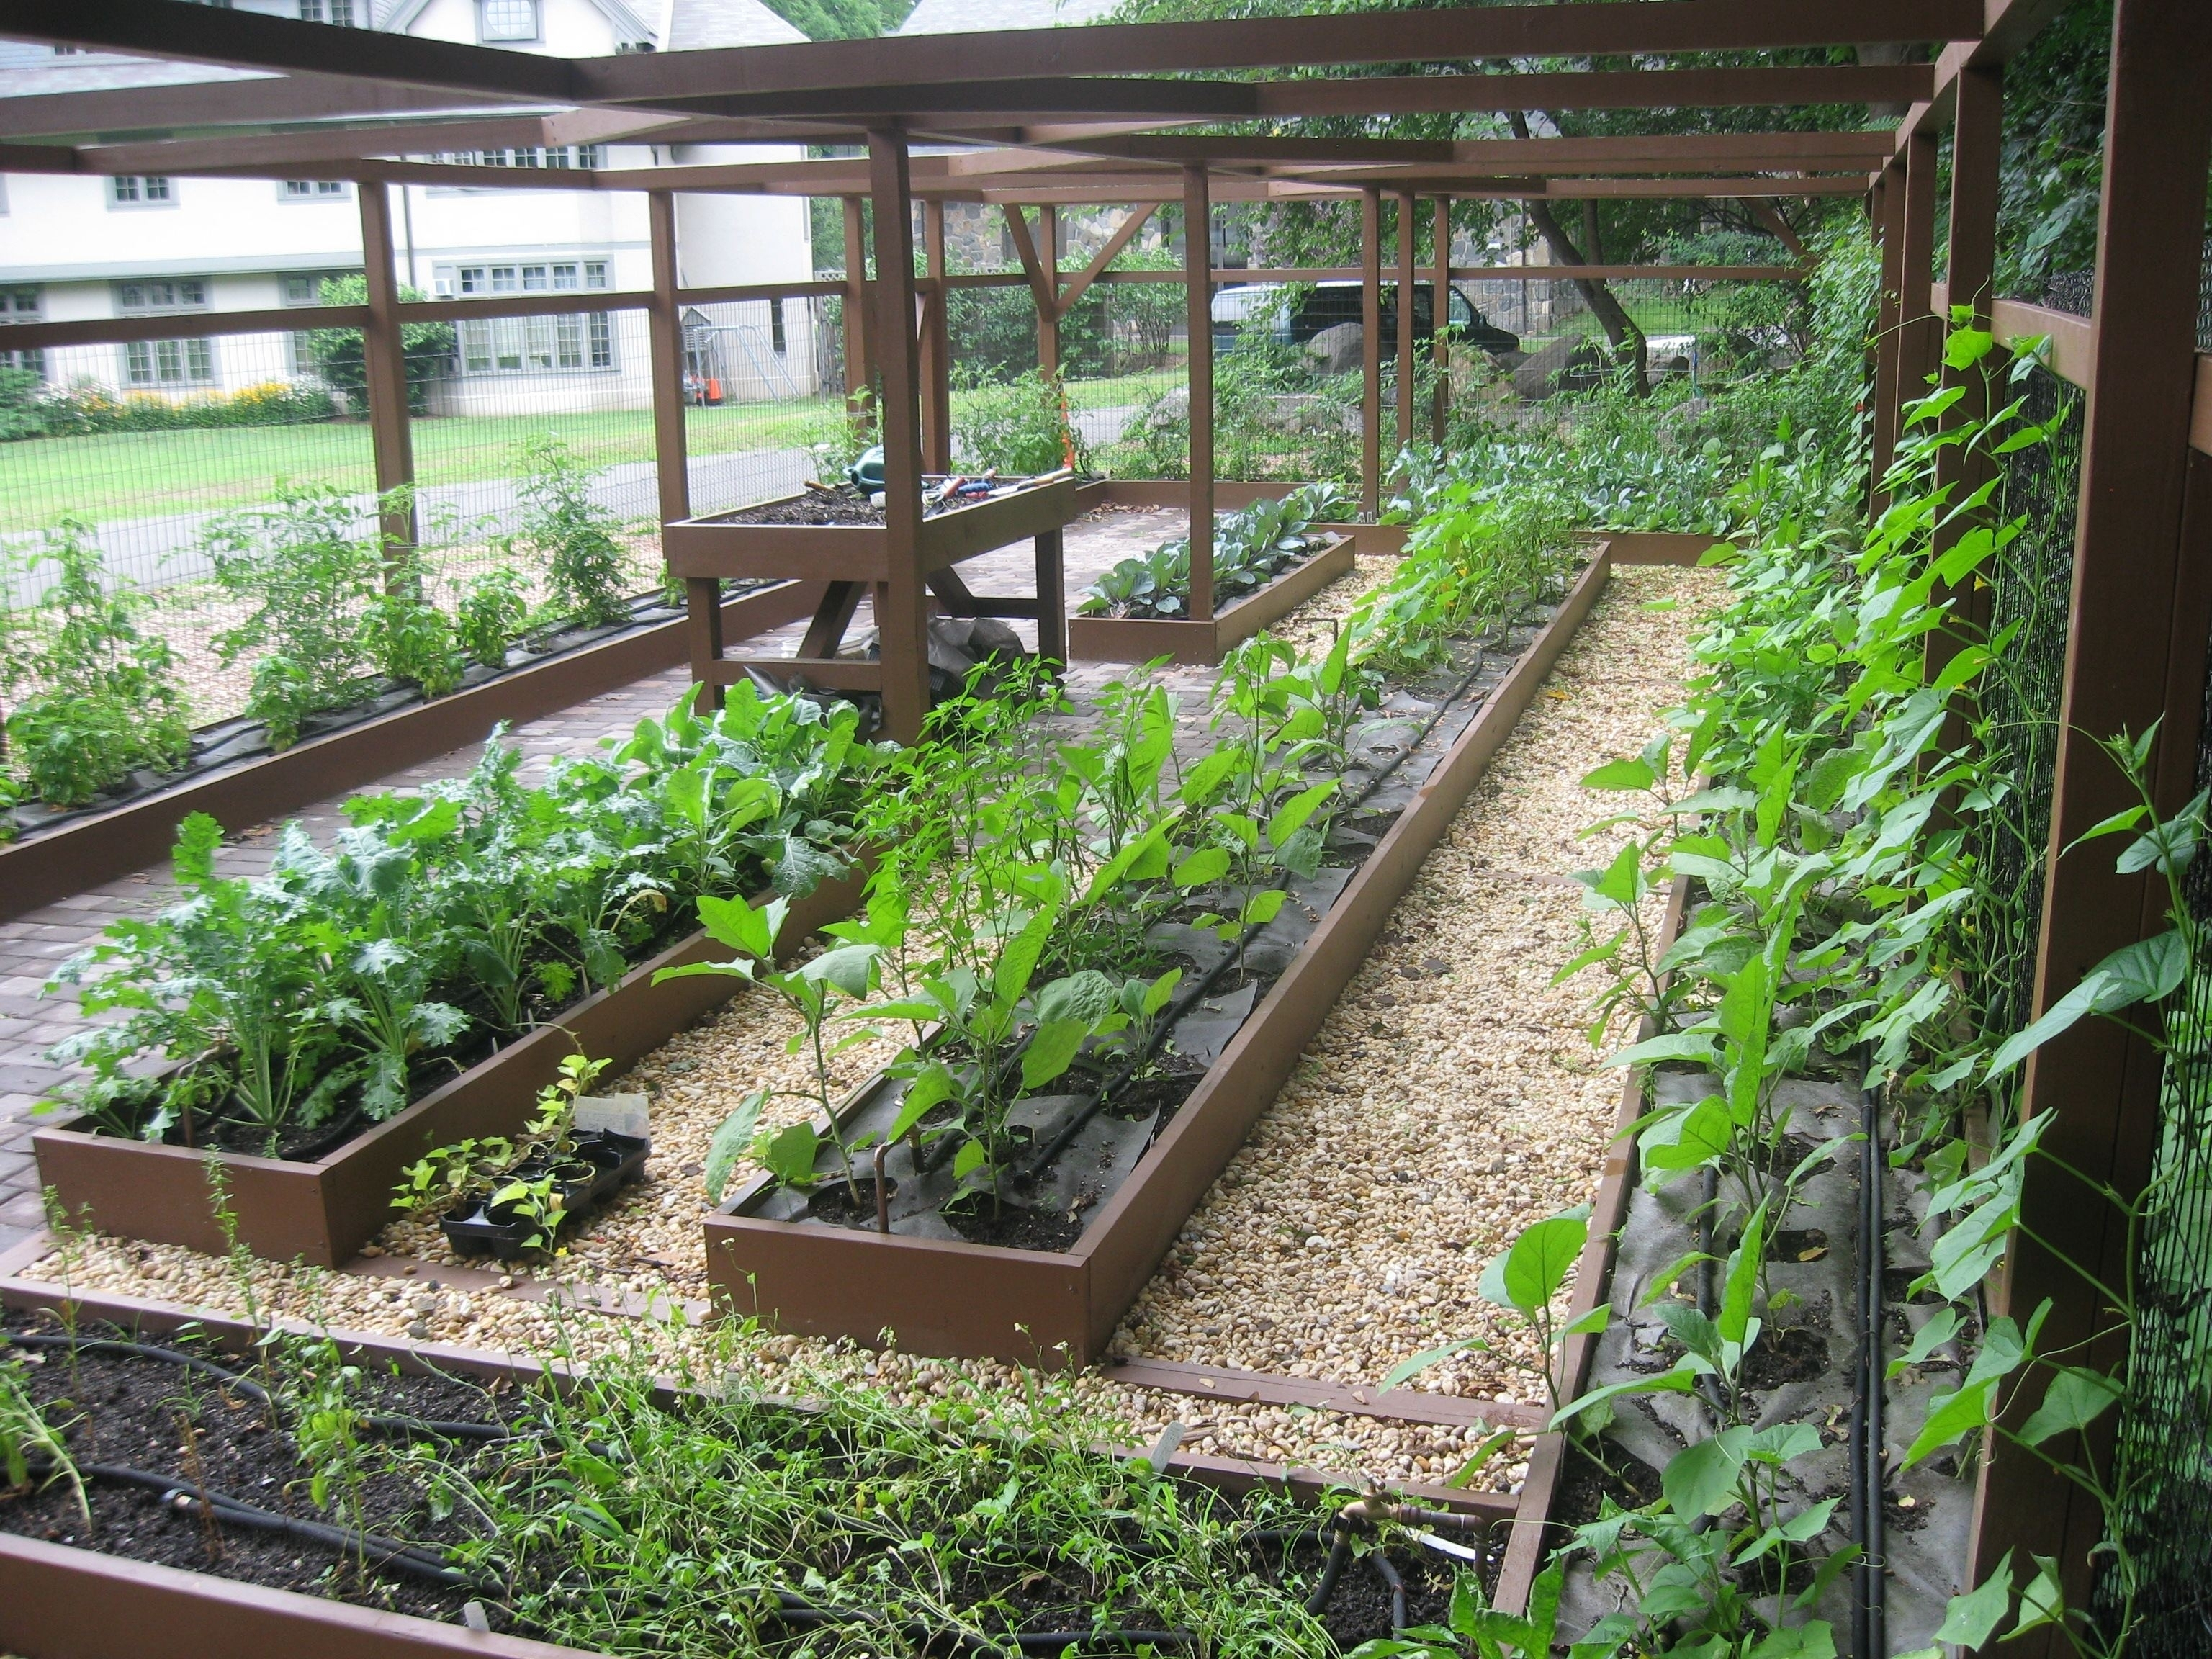 Coolest-Backyard-Fruit-And-Vegetable-Garden-Ideas -With-Inspiration-Interior-Home-Design-Ideas with Backyard Fruit And Vegetable Garden Ideas